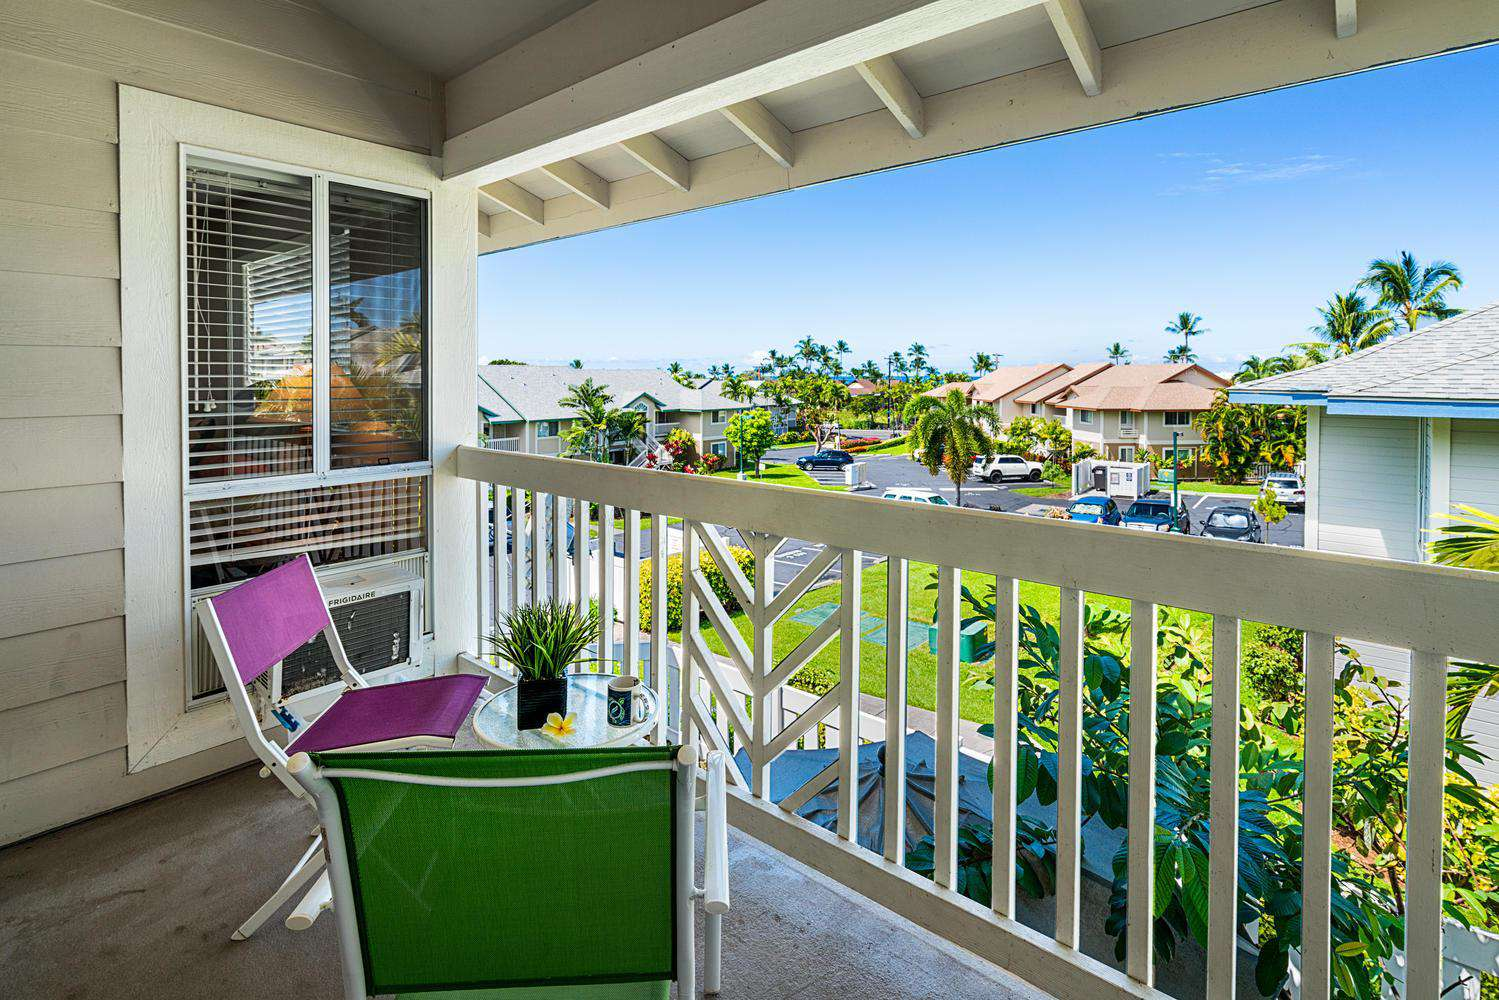 Enjoy a bit of ocean view, and gentle island breezes on your lanai.